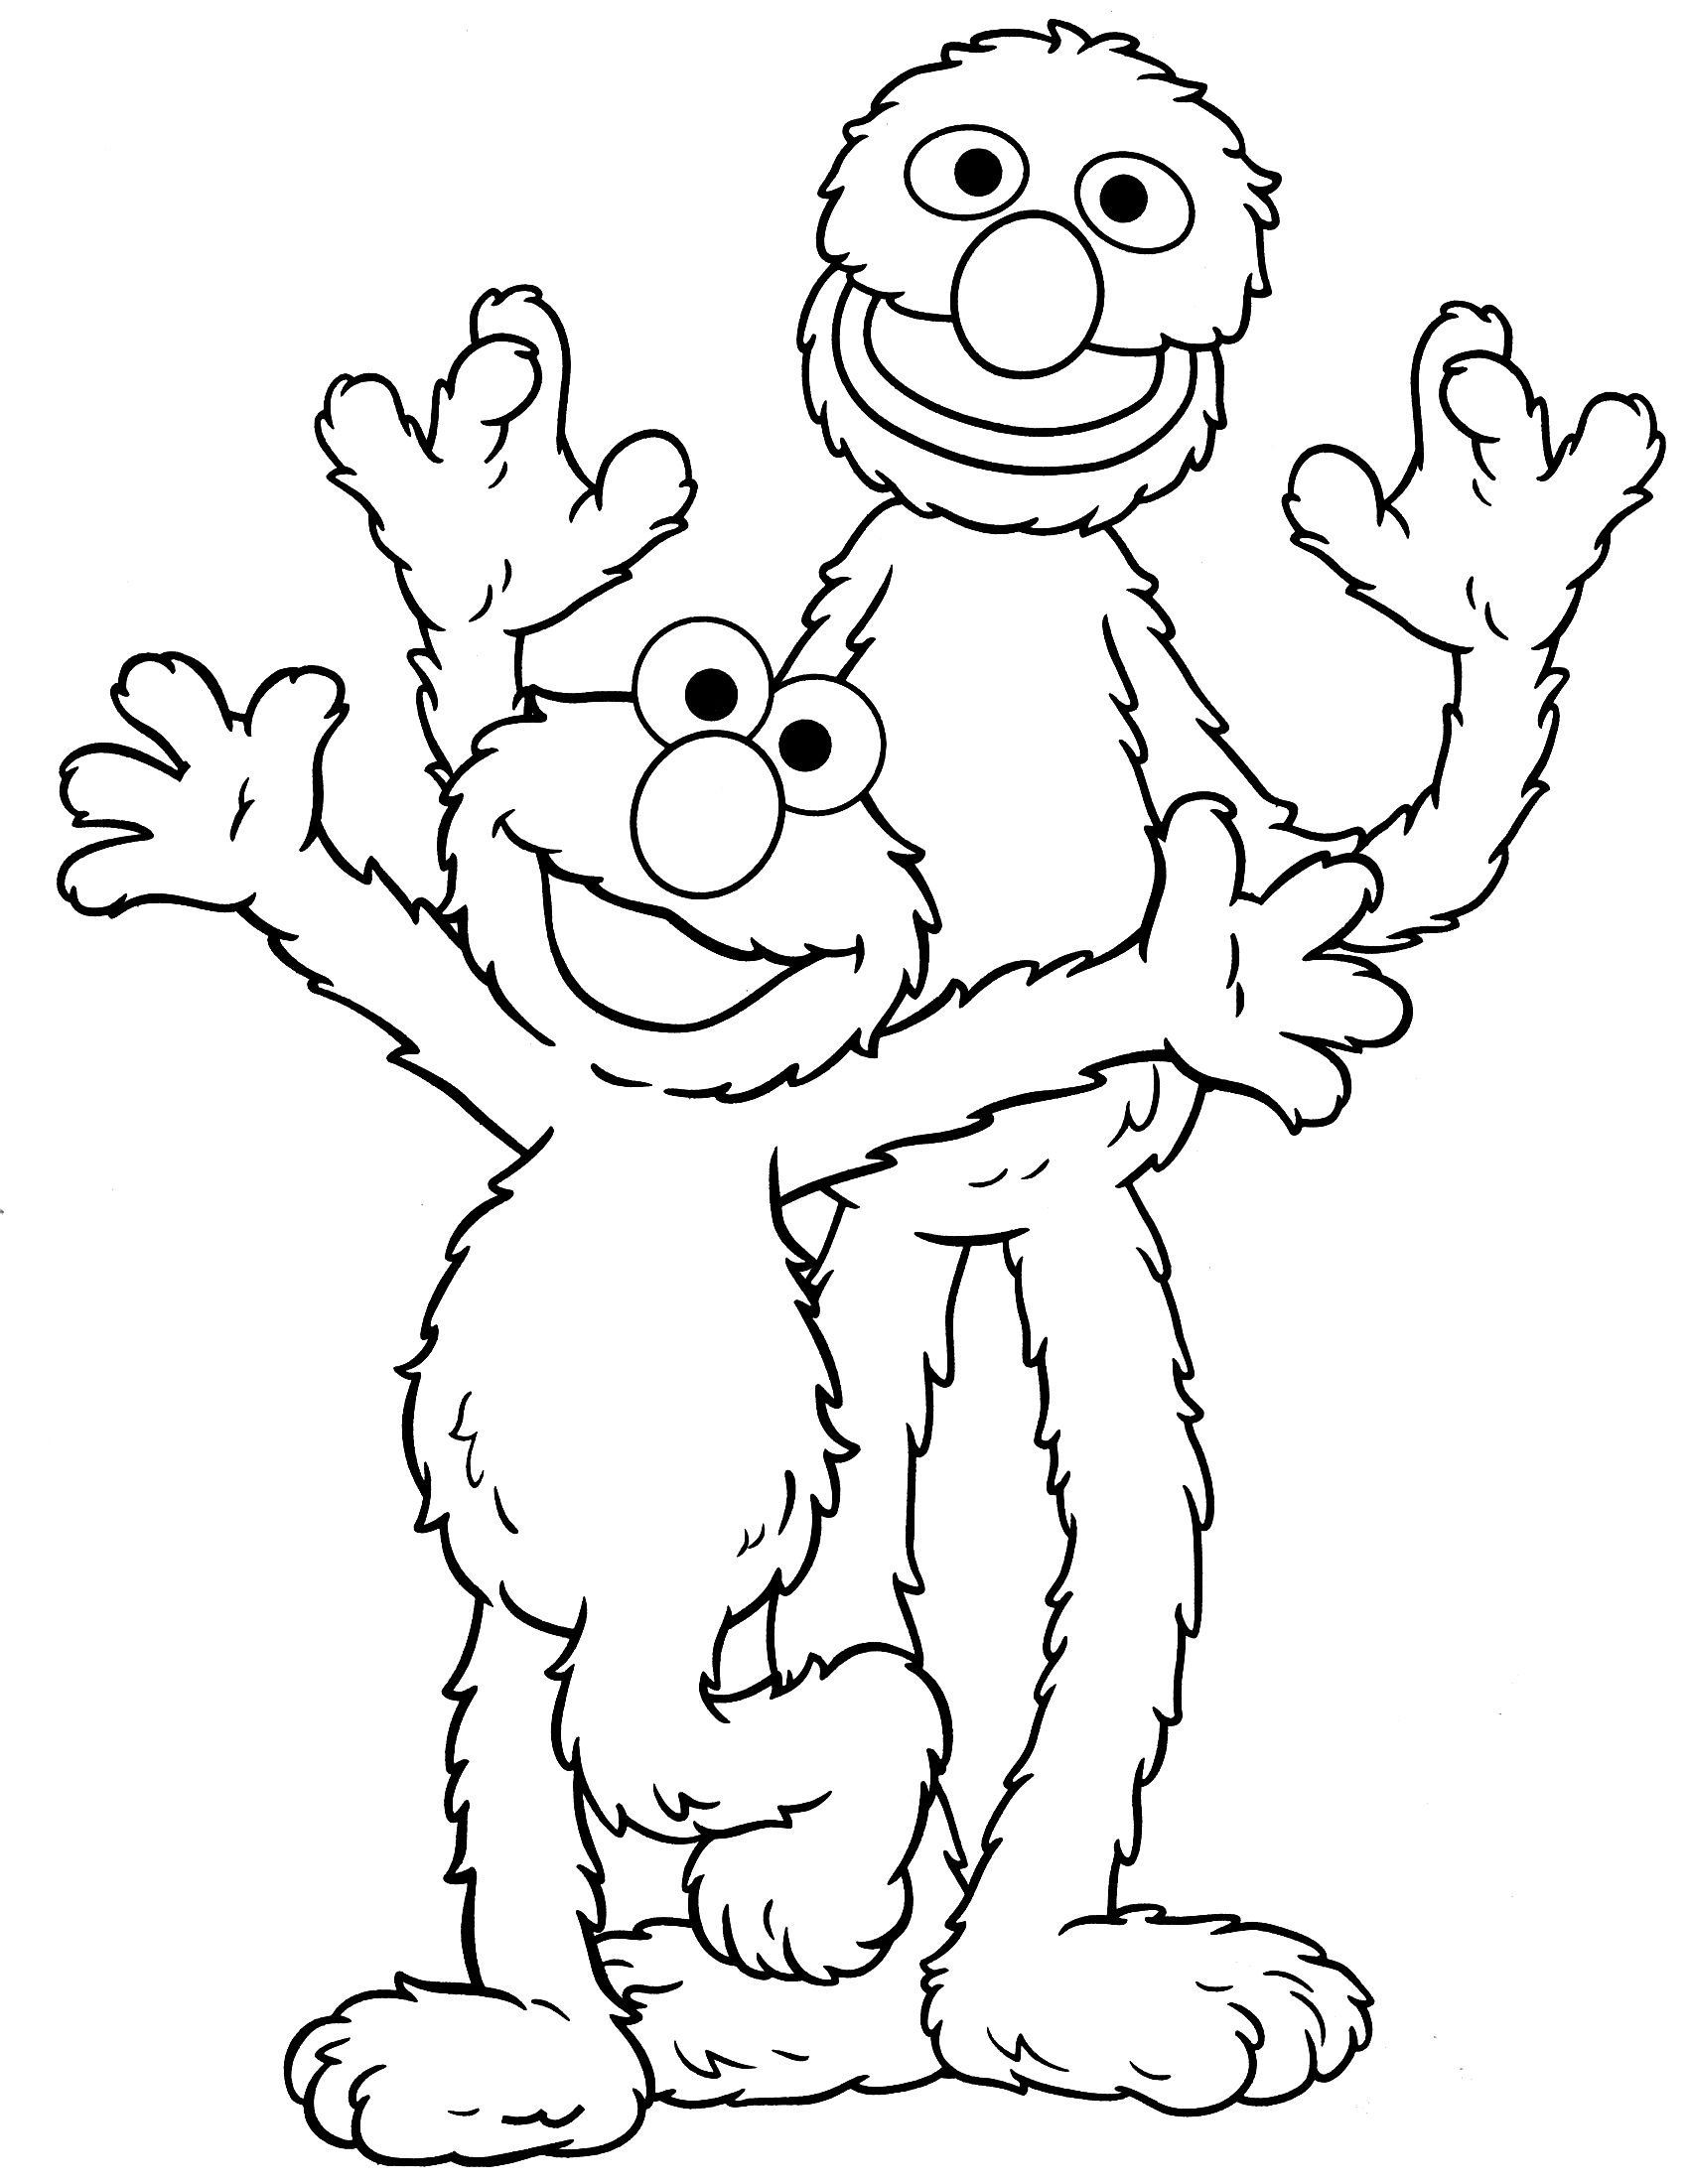 Sesame Street Coloring Pages Bert Free Printable Coloring Pages ...